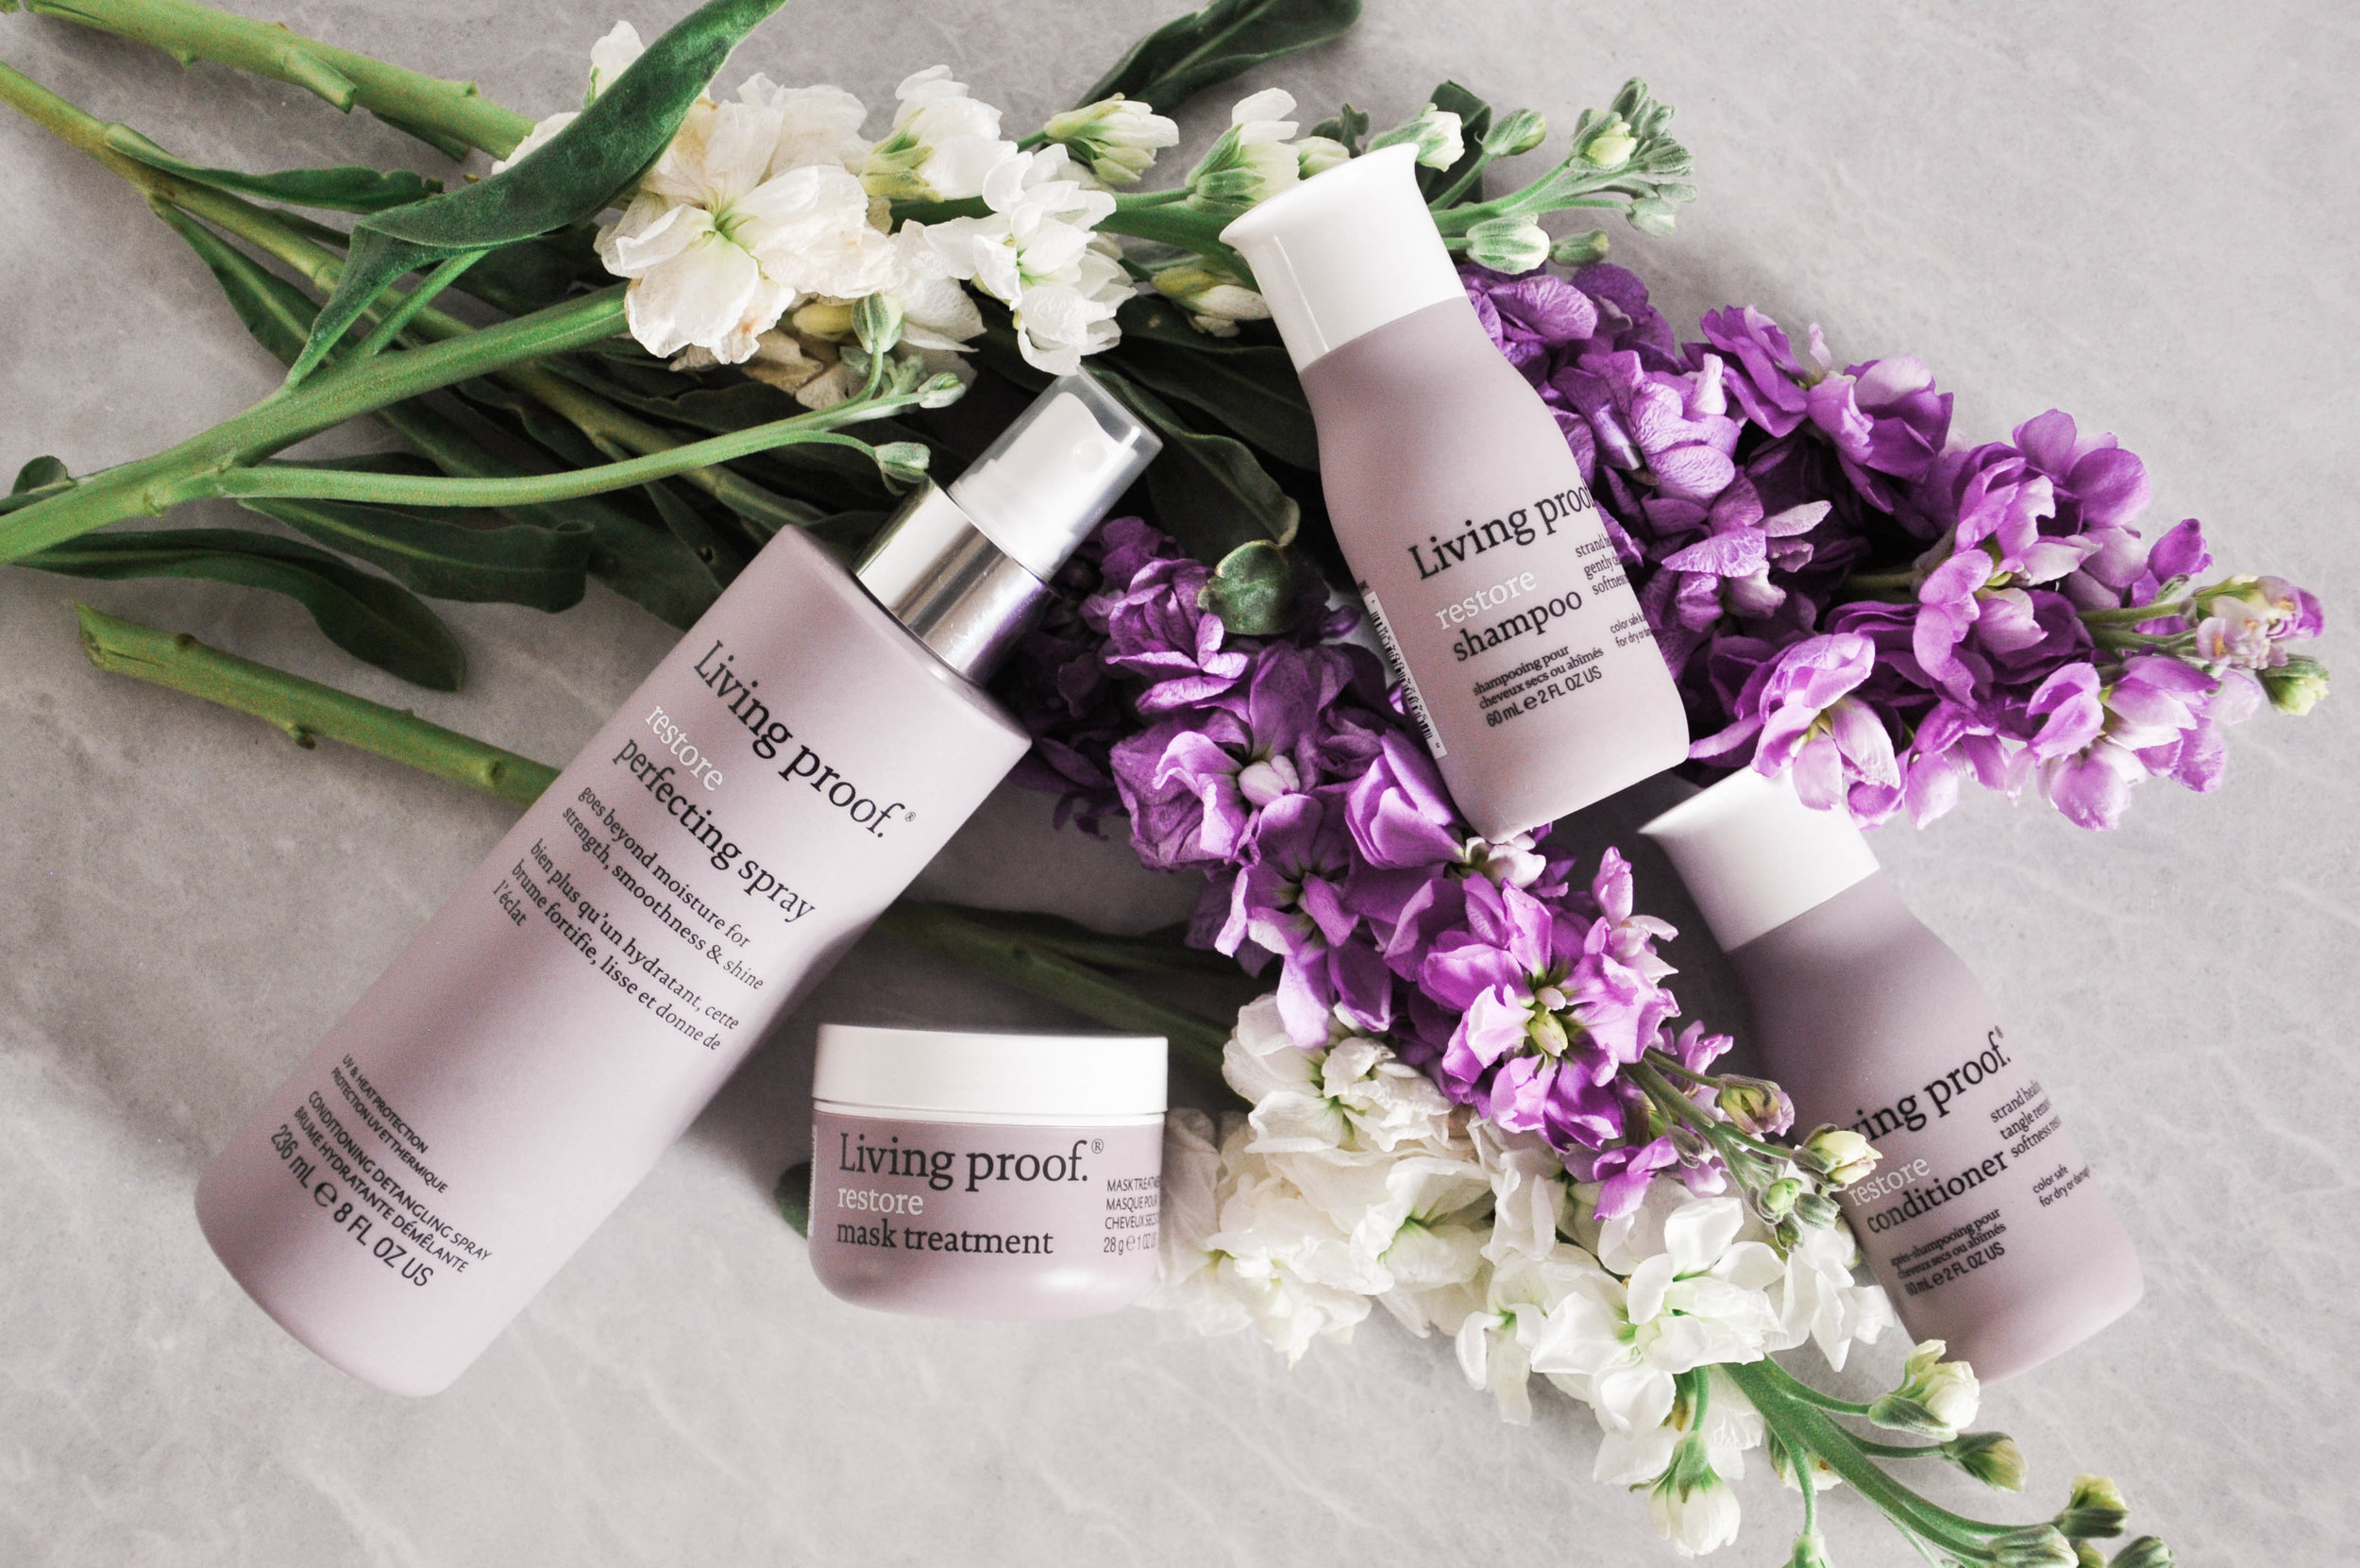 living proof hair products displayed with flowers